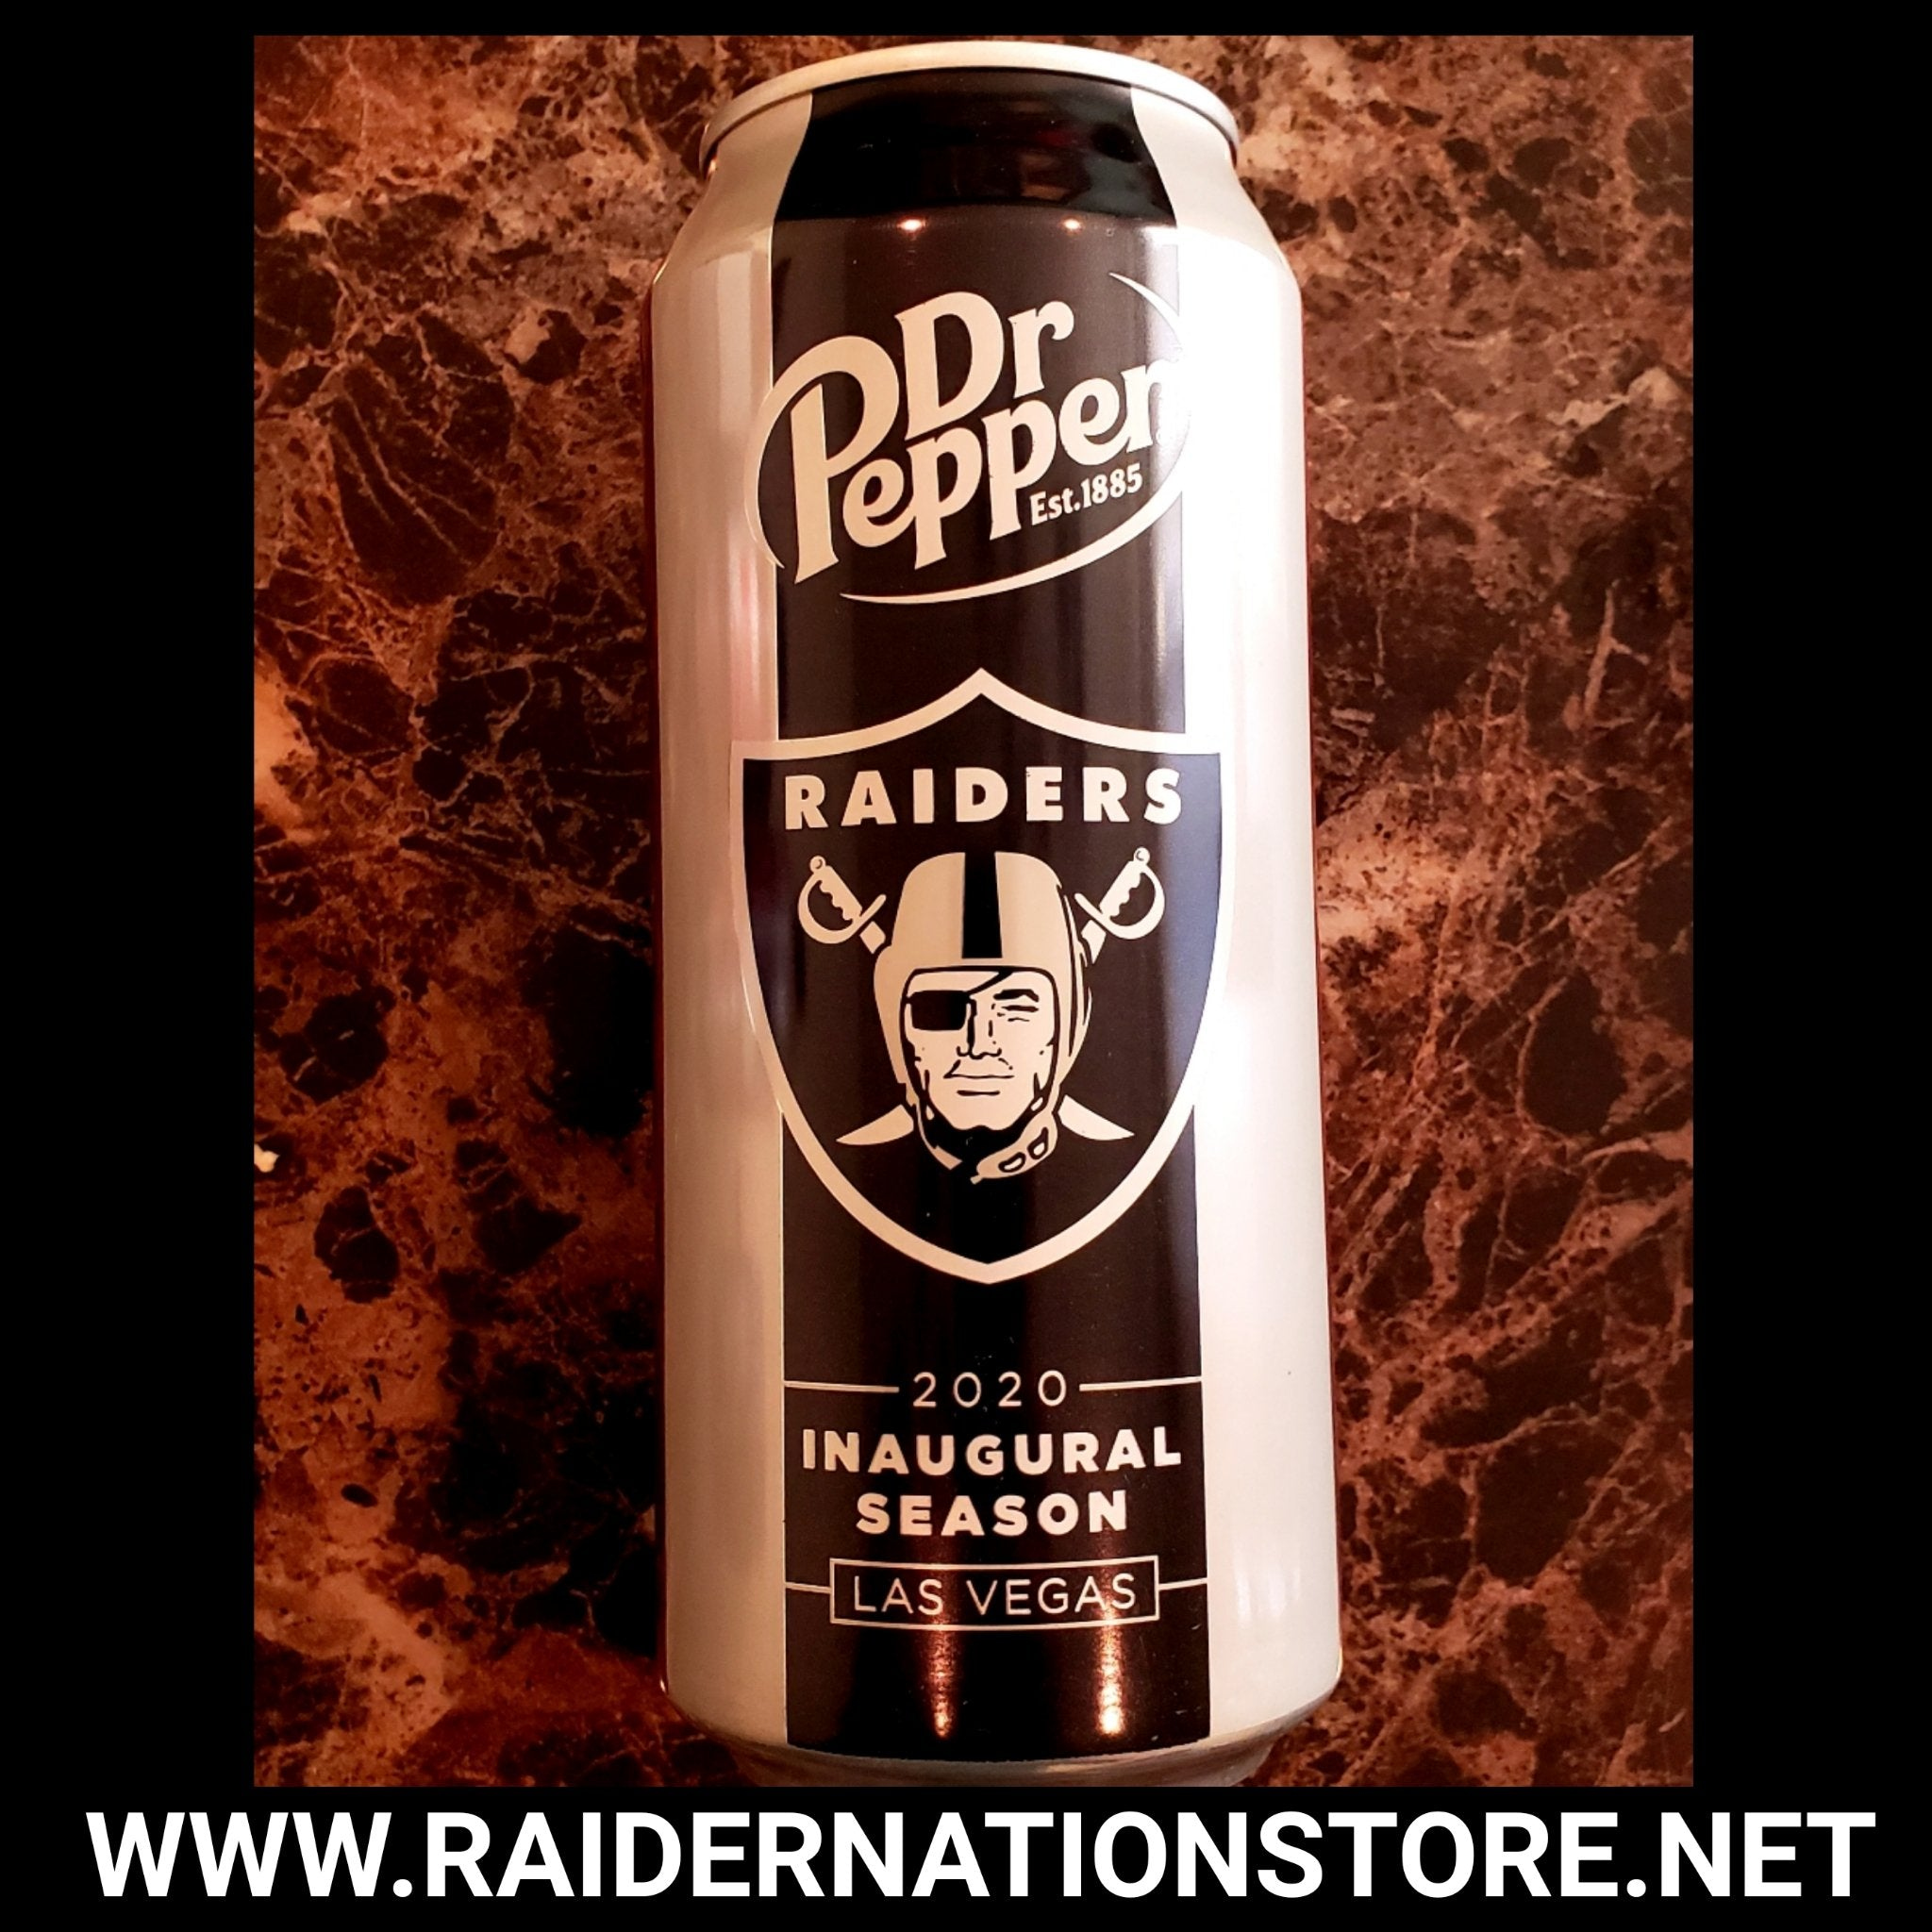 RAIDERS INAUGURAL DR PEPPER FULL CAN